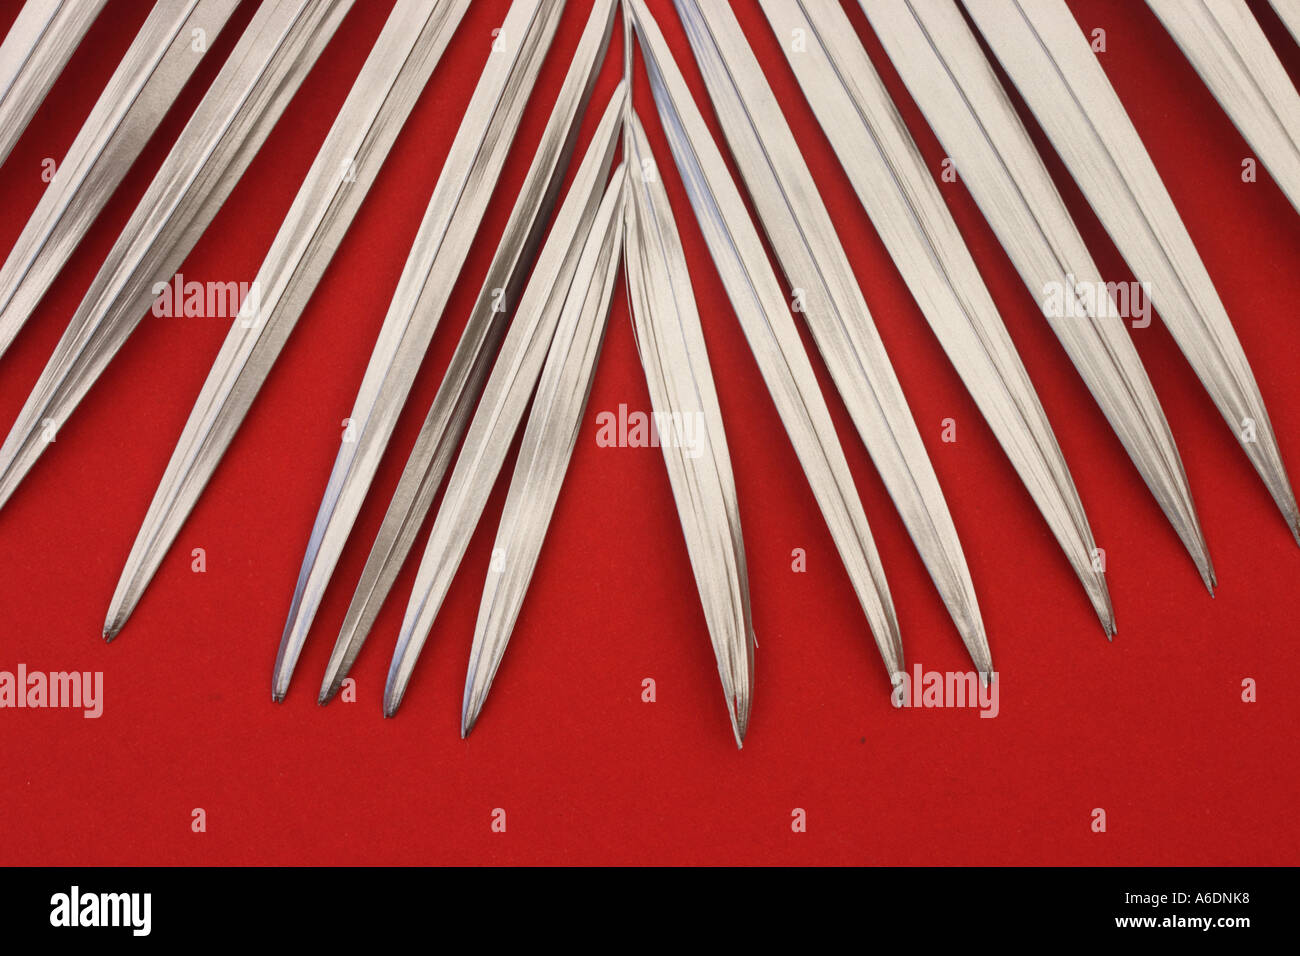 SILVER PALM FROND  RED BACKGROUND HORIZONTAL BAPDB5999 - Stock Image